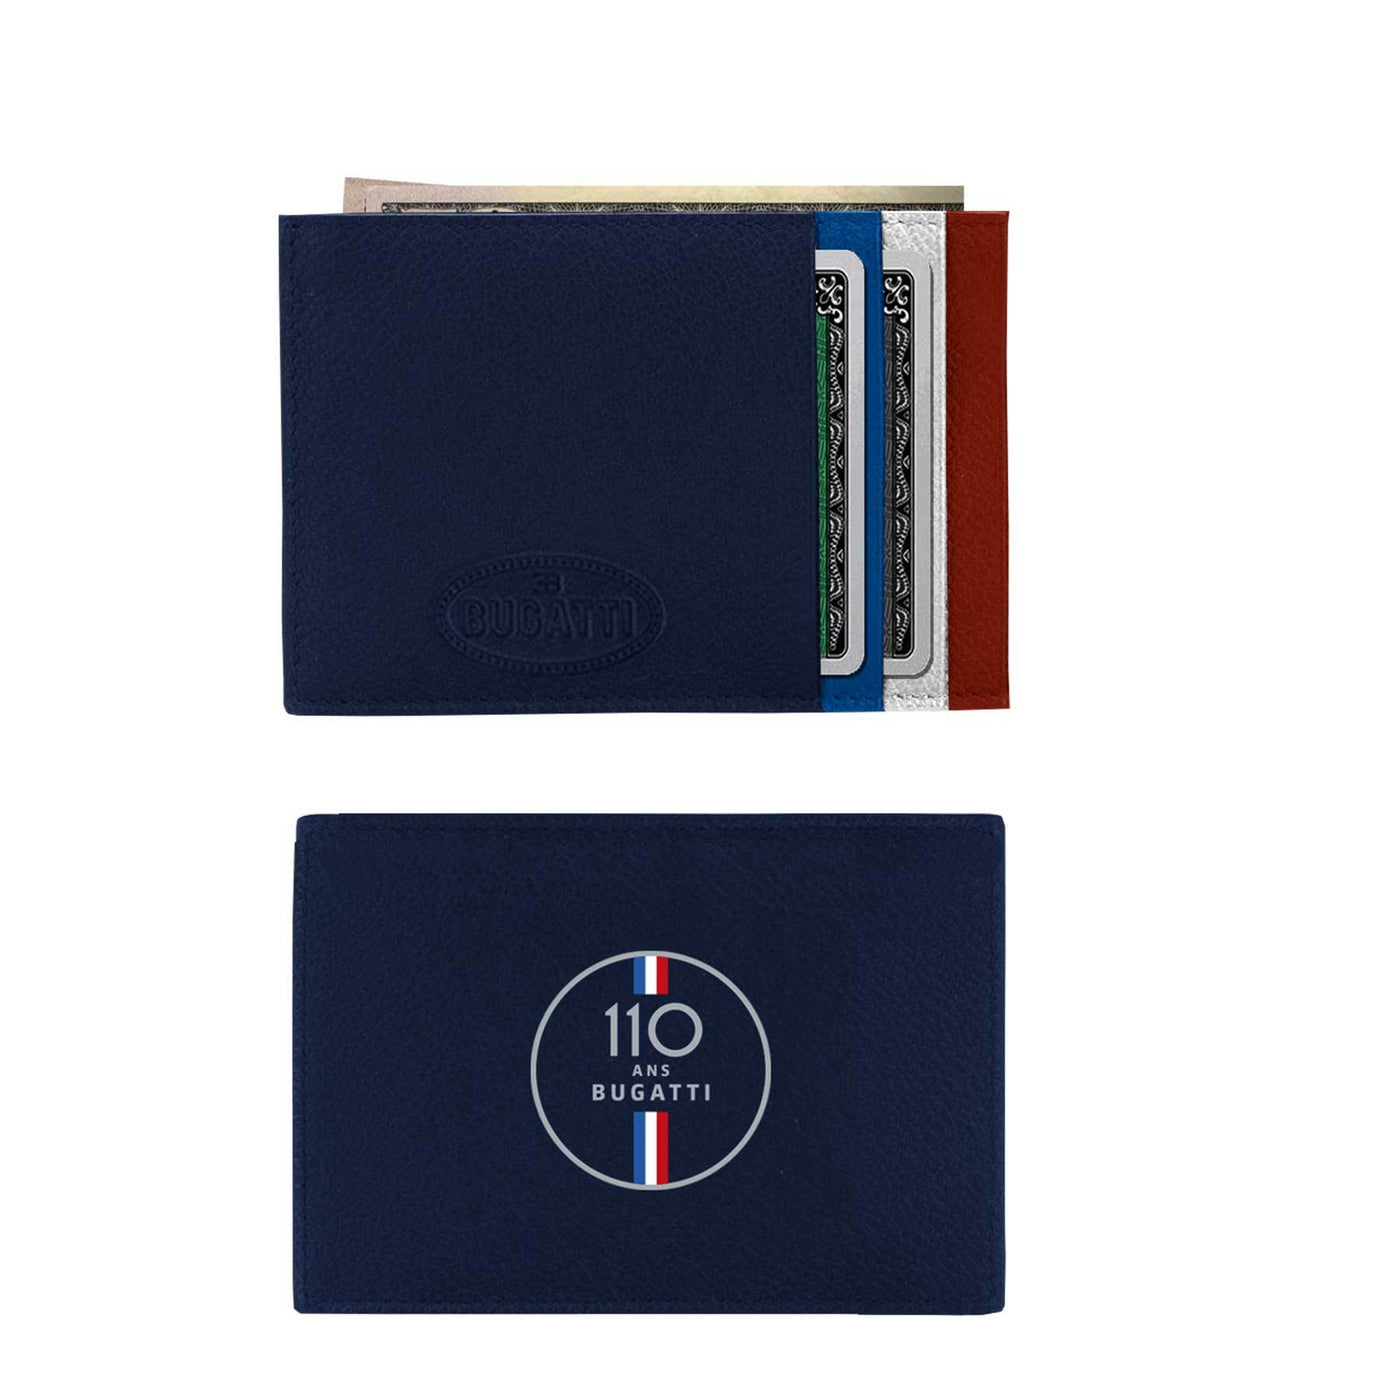 "Bugatti ""110 Ans"" Leather Cardholder"